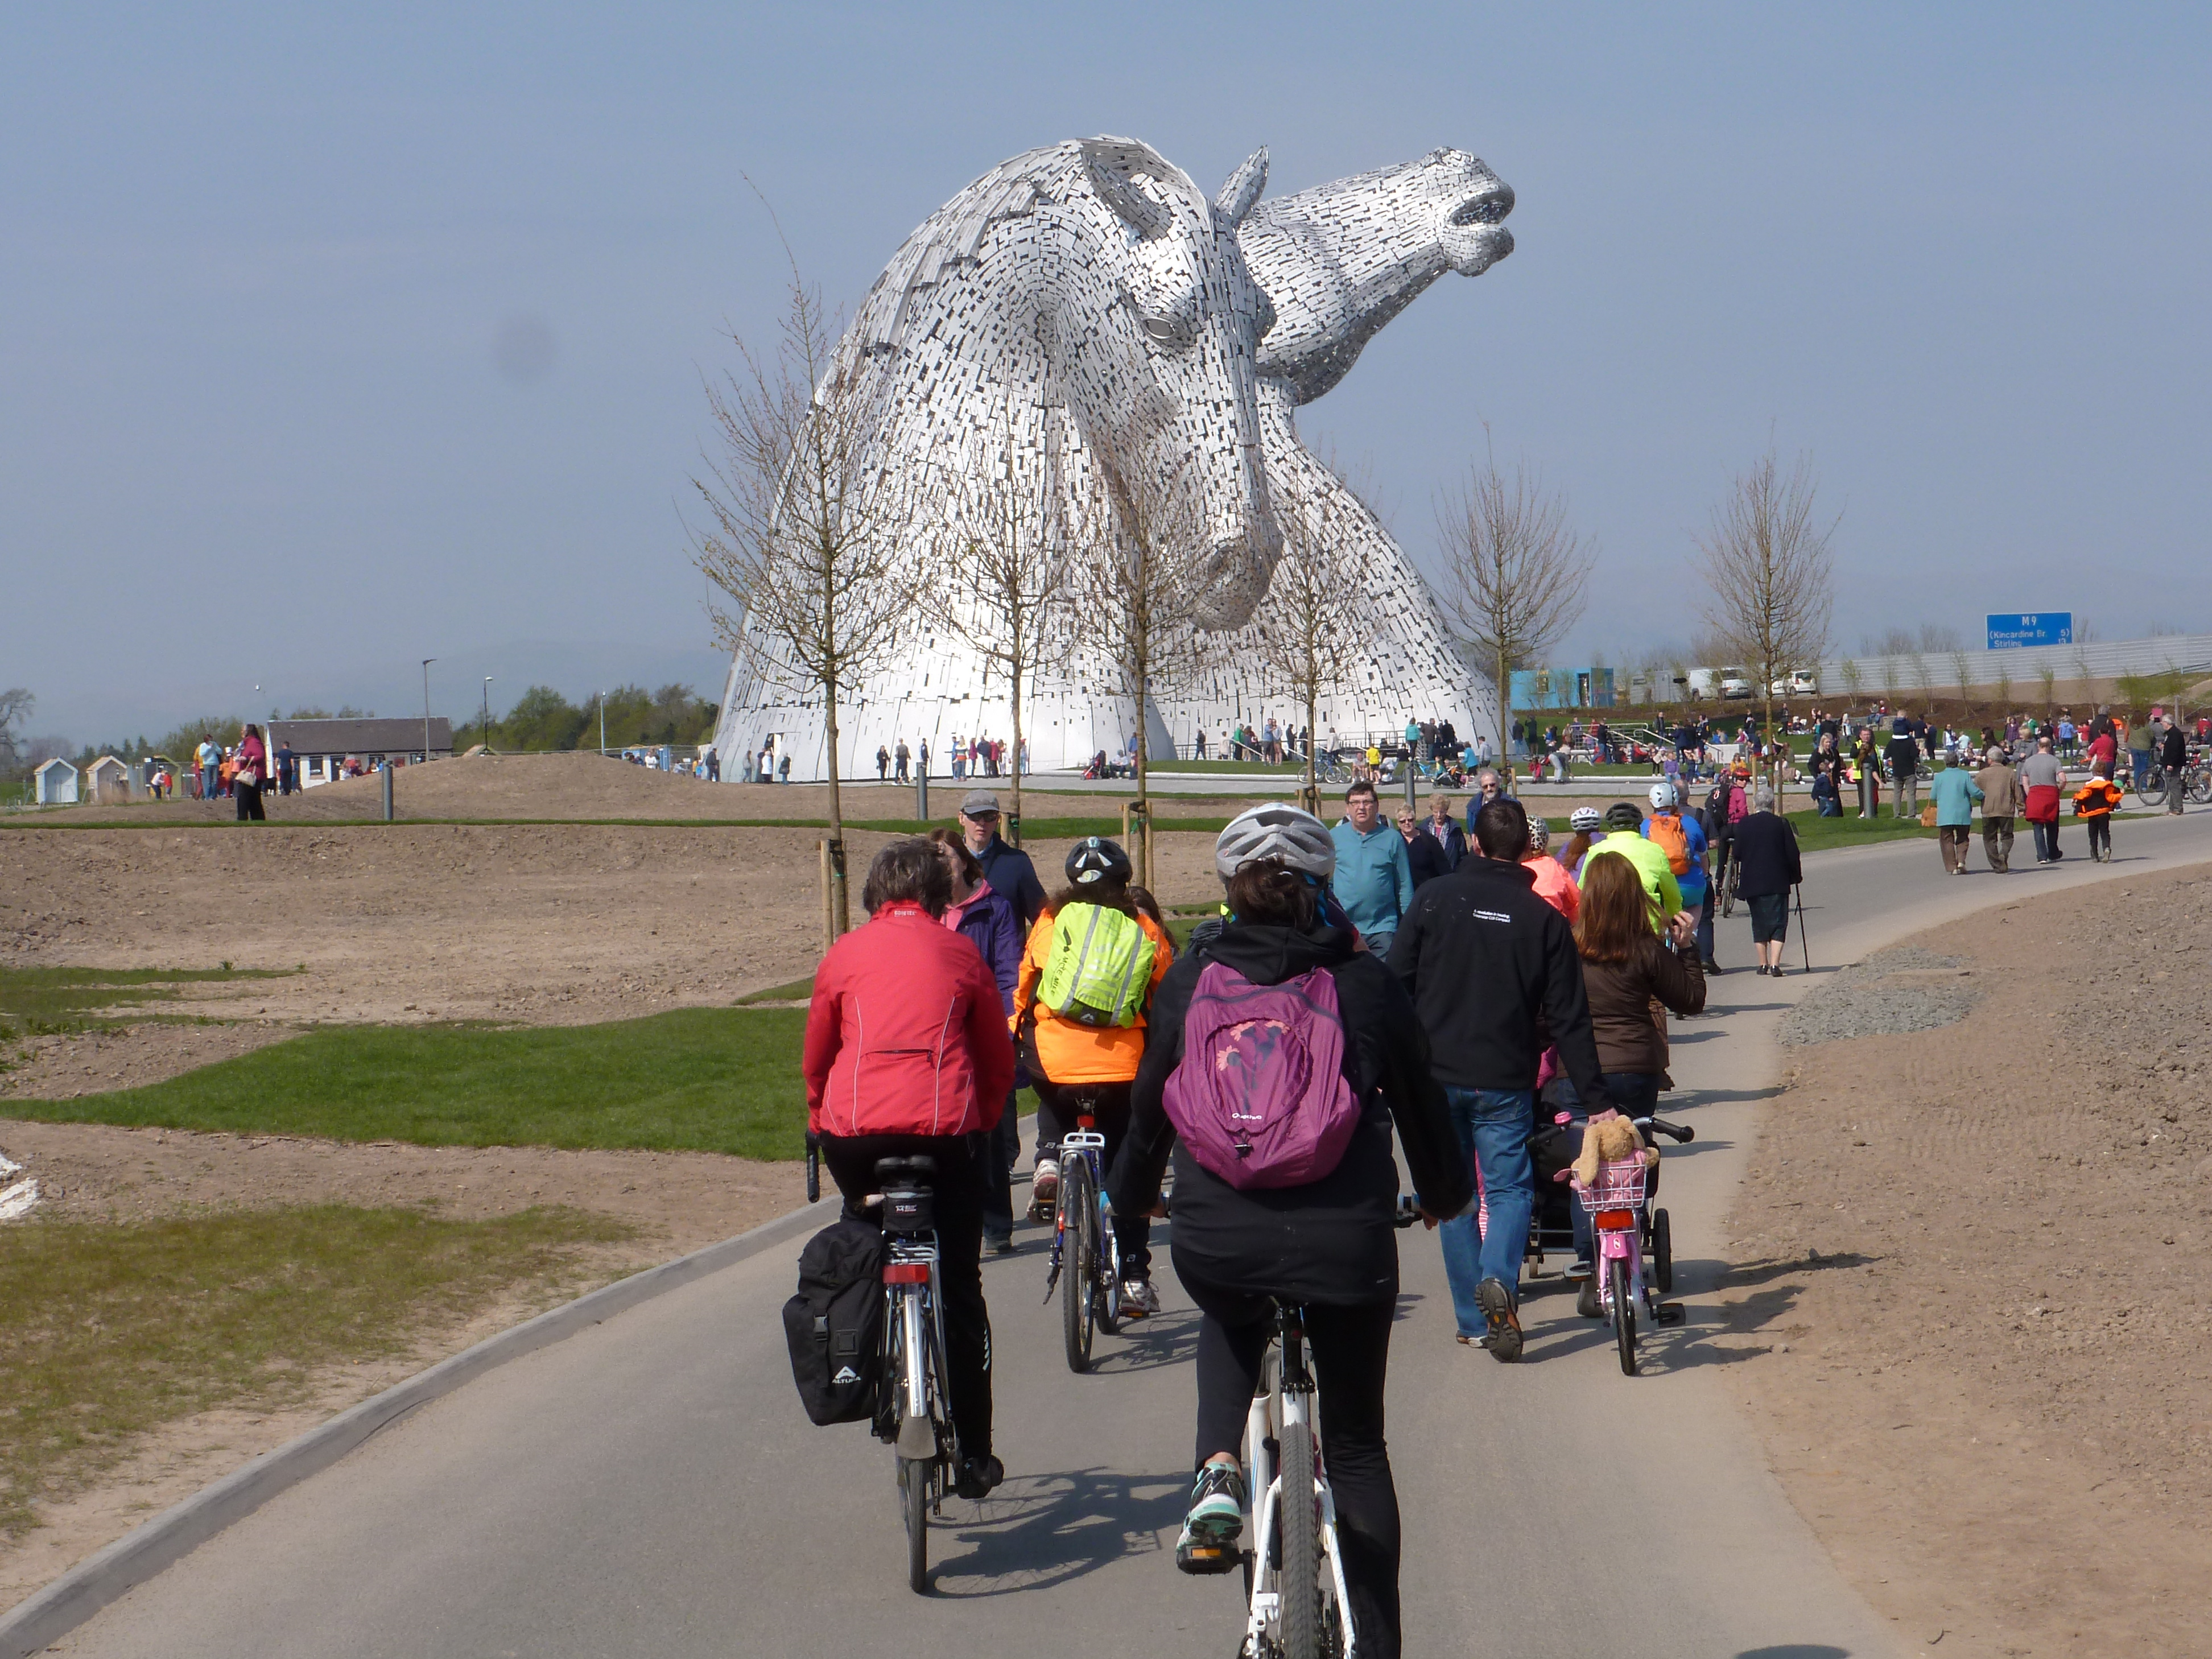 Longer route to Kelpies